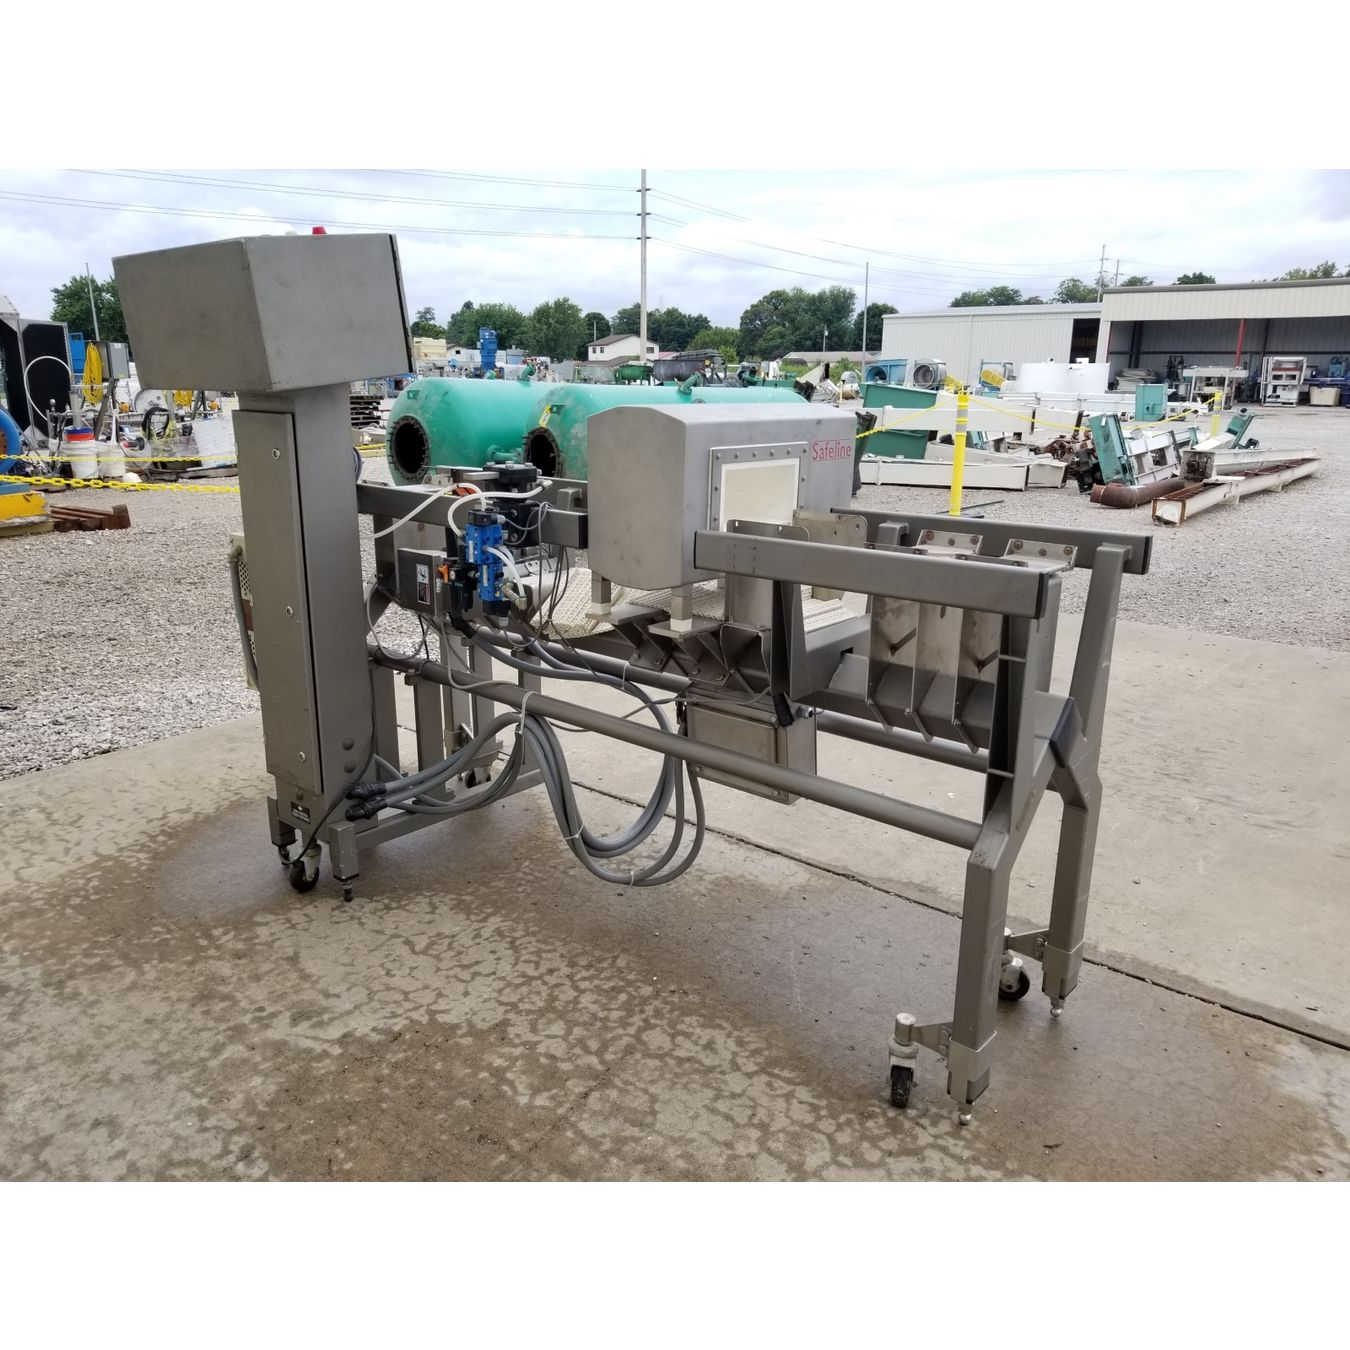 Used Safeline Metal Detector With Mettler Toledo Hi Speed Load Cell Wiring Checkweigher